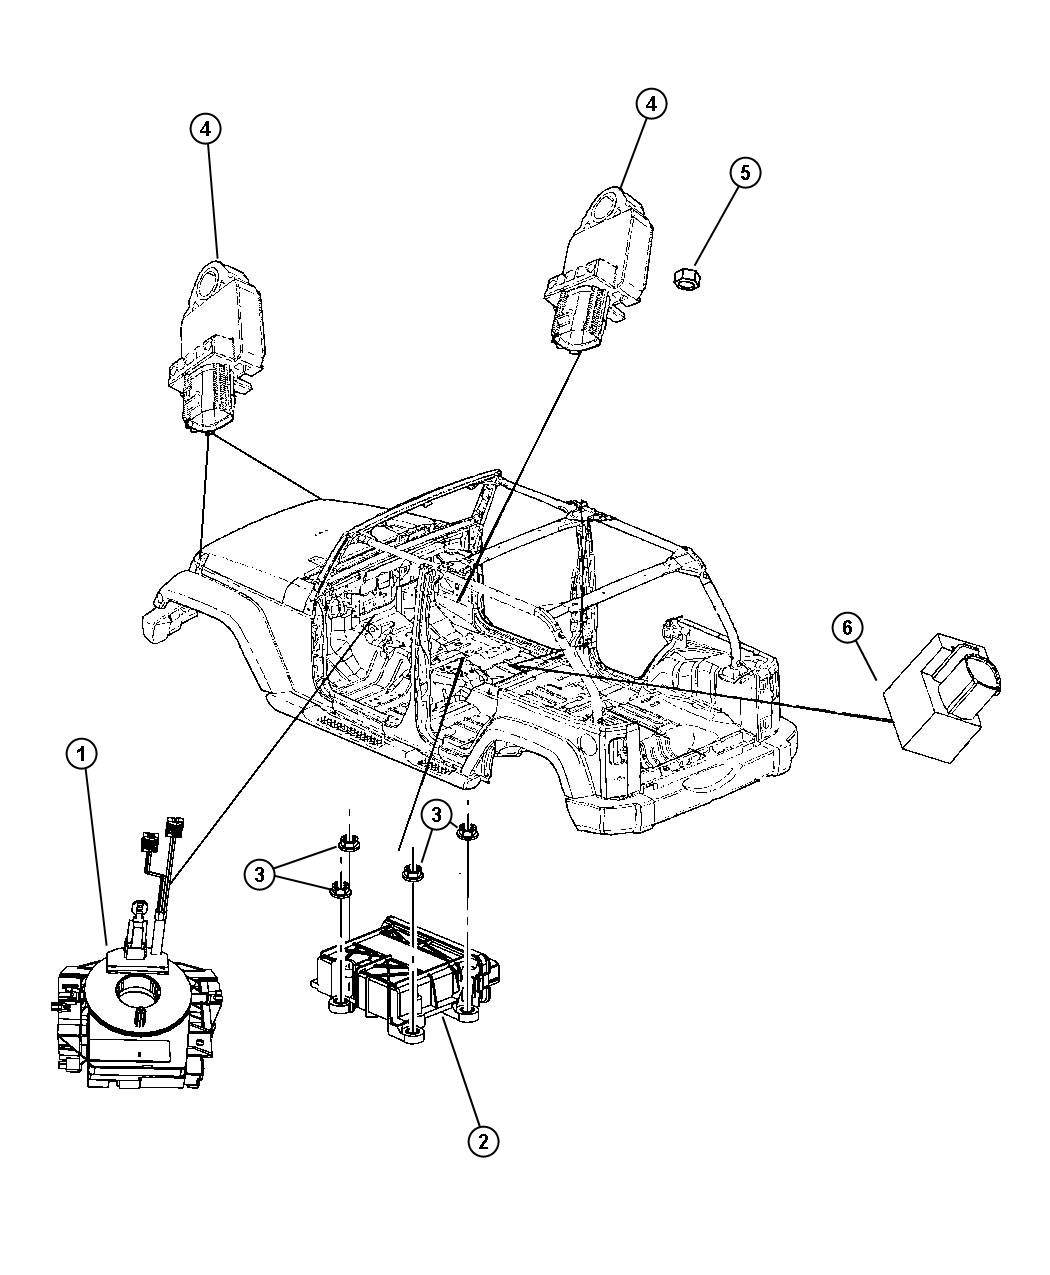 jeep wrangler engine wiring diagram best wiring library 1979 Ford Alternator Wiring Diagram 2010 jeep wrangler air bag modules impact sensors and airbag ledningsdiagram for 98 wrangler auto electrical wiring diagram 2010 jeep